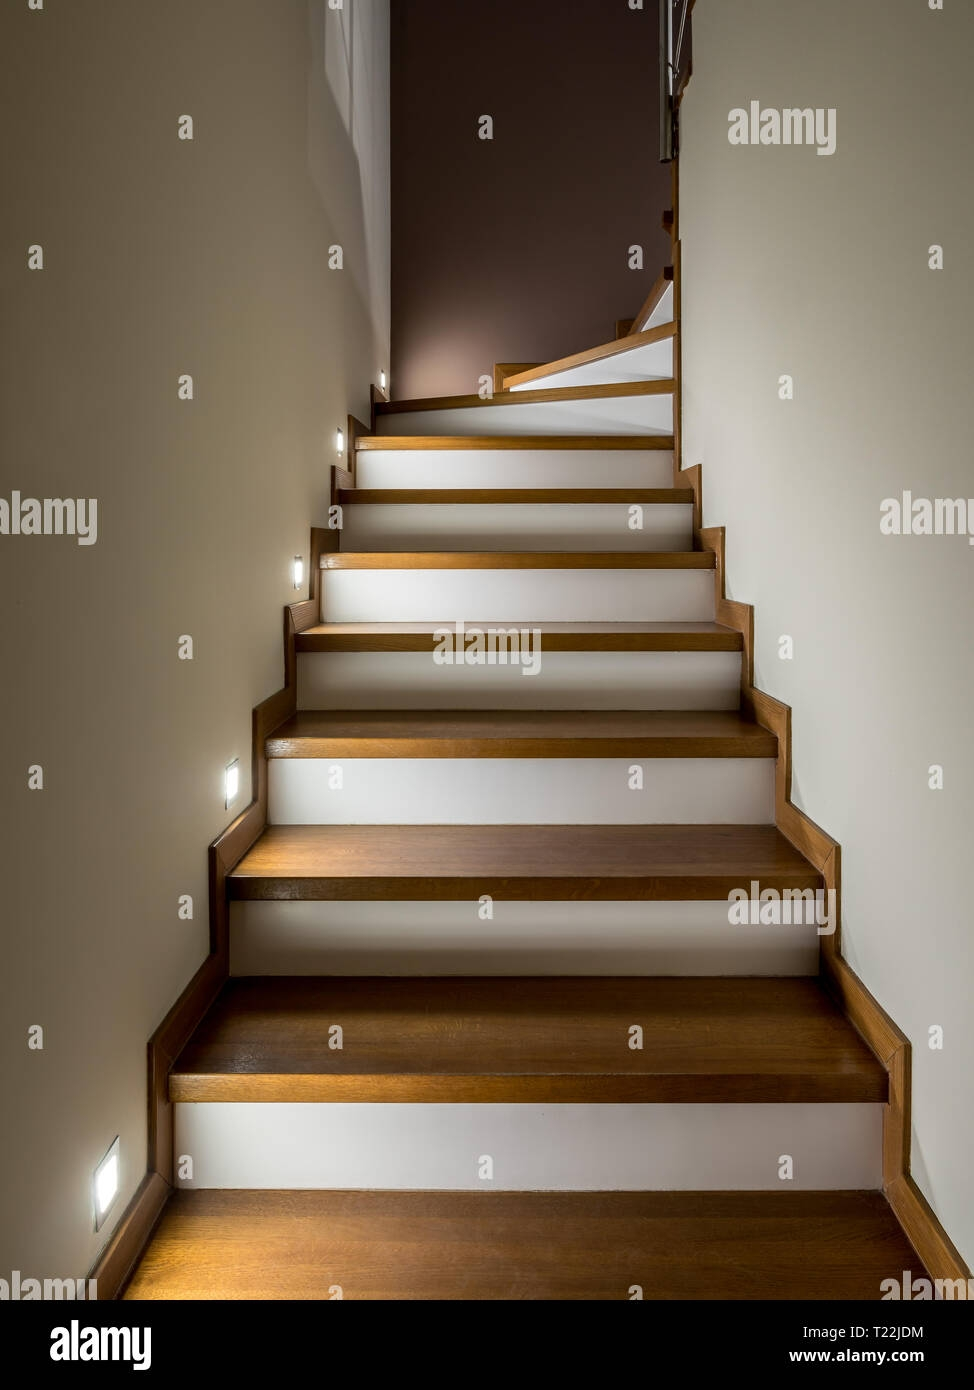 Illuminated Staircase With Wooden Steps And White Risers Modern | Wood Stairs With Wood Risers | Painting | Solid Oak Stair Treads Finished | Distressed | Before And After | Wooden